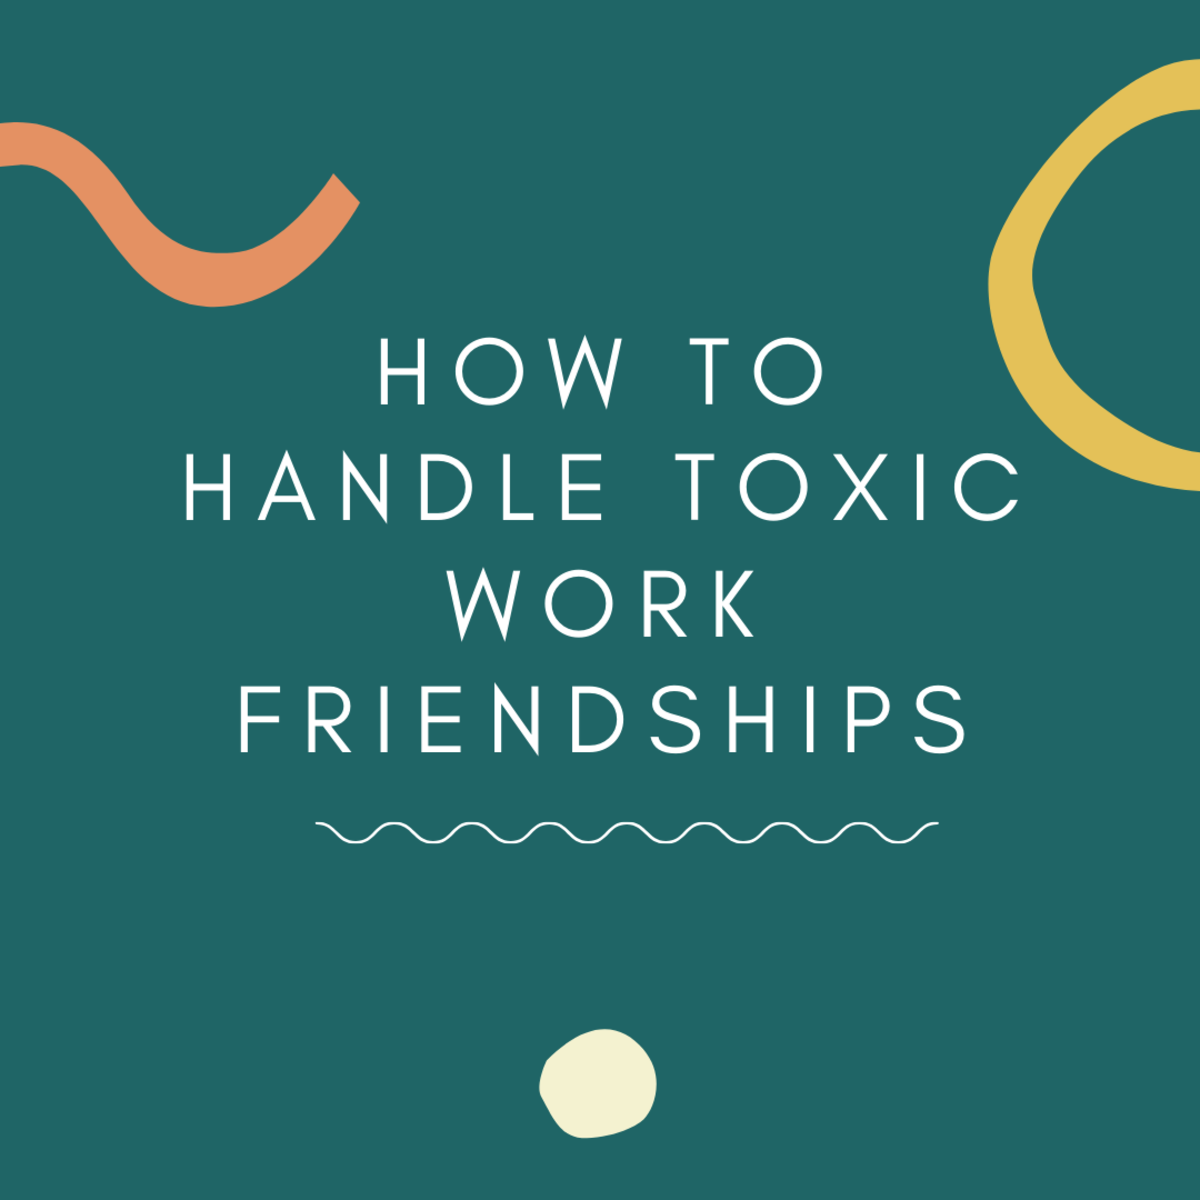 Learn how to handle toxic work friendships in a professional manner.